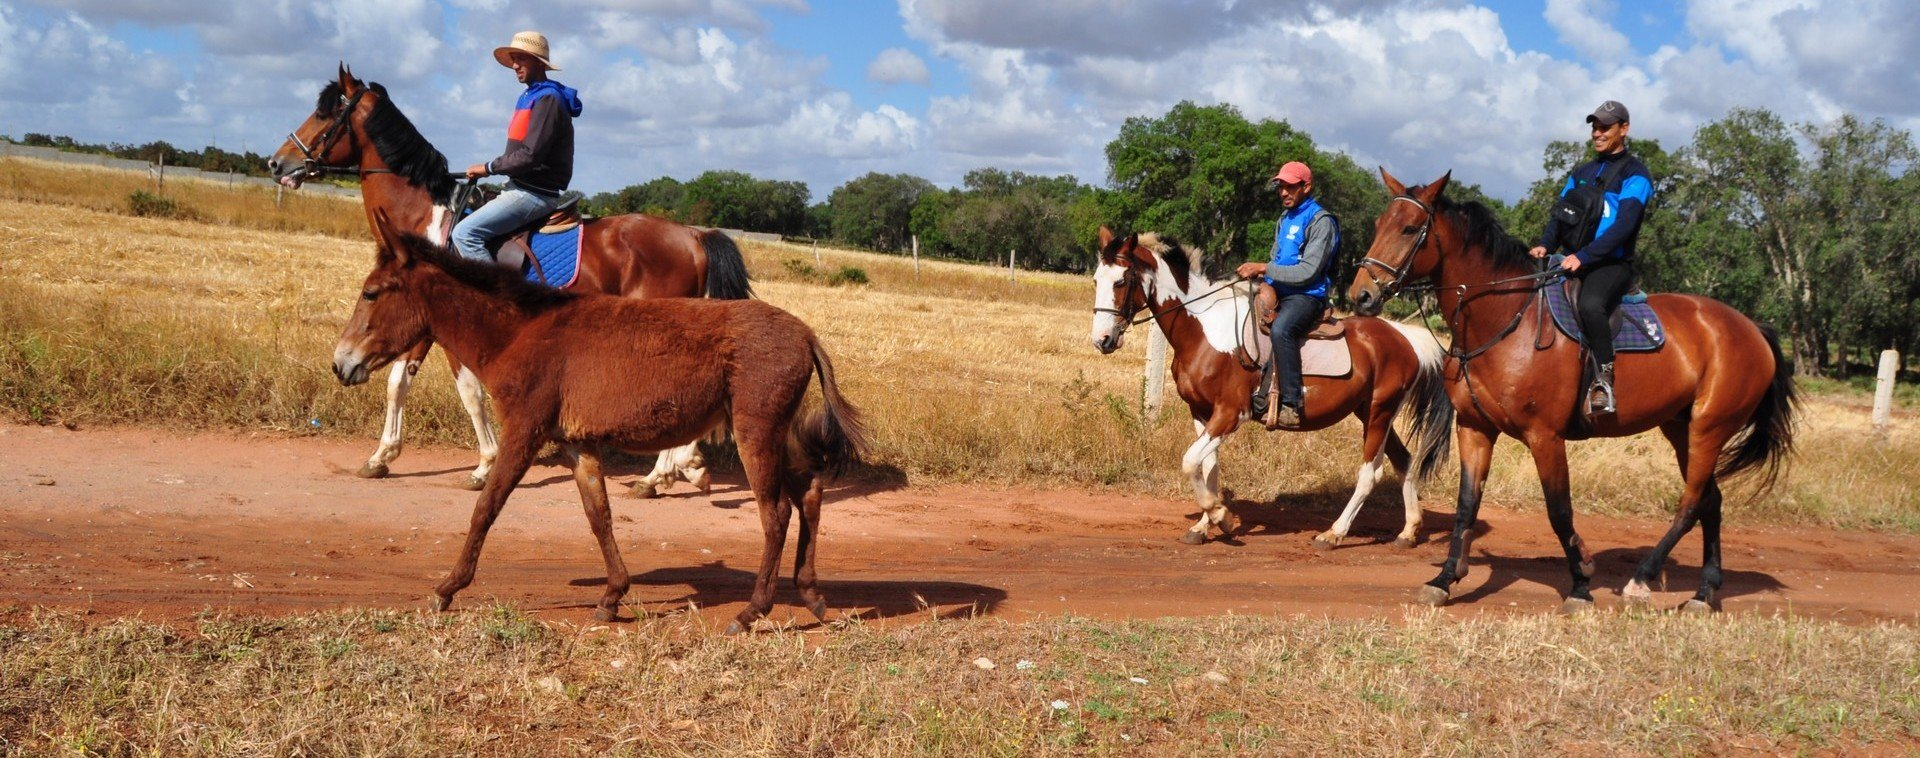 Morocco Horse Back Riding Tour